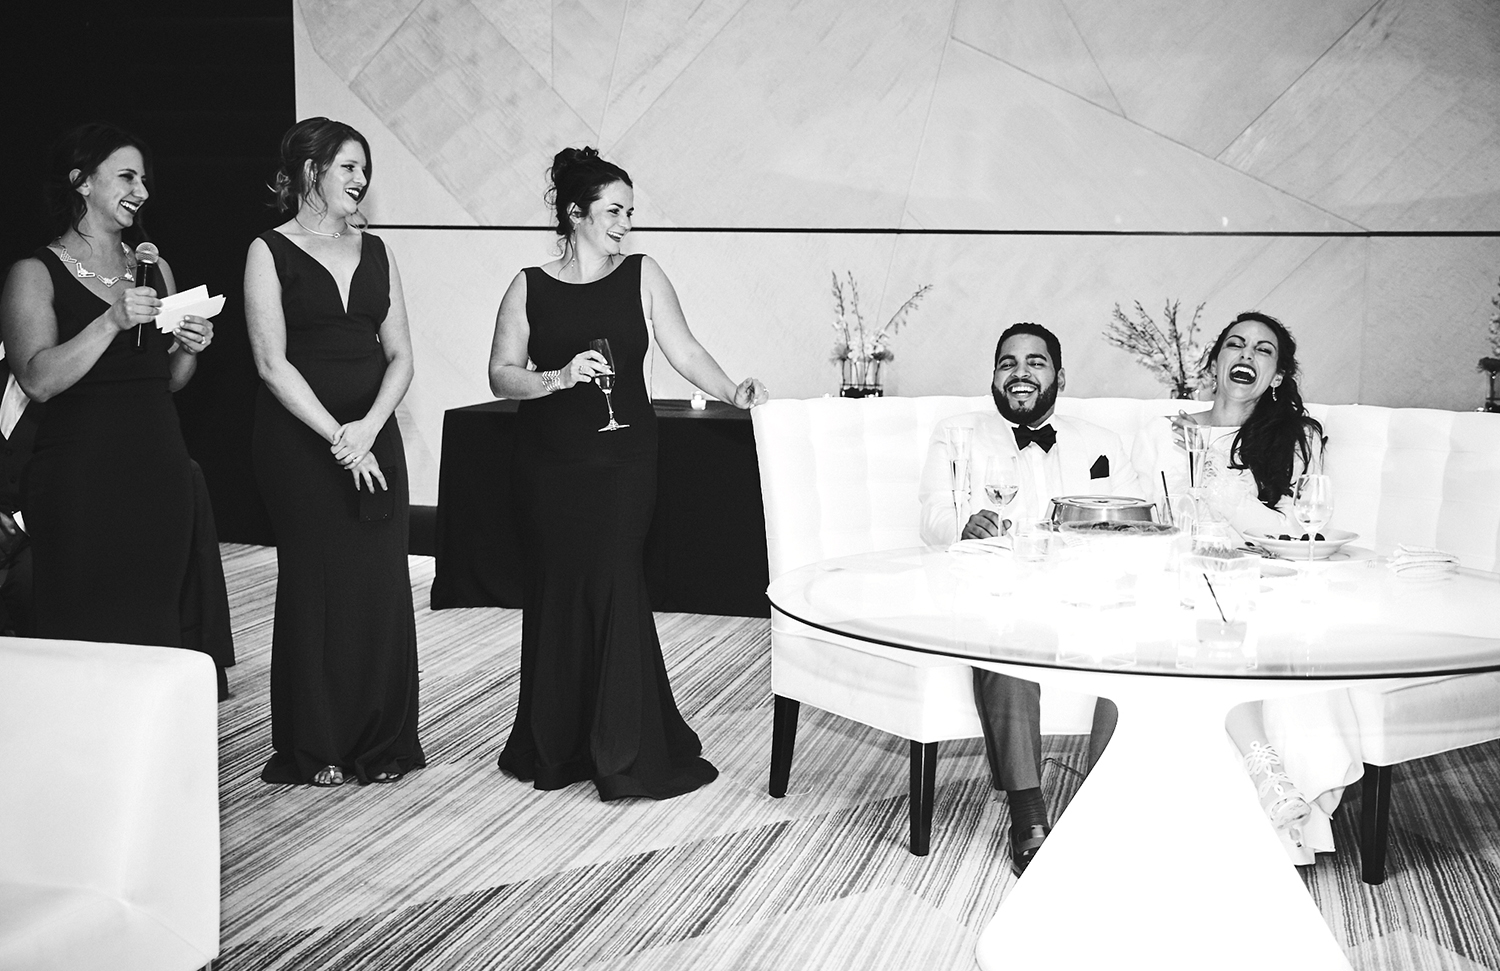 170930_WilliamValeWeddingPhotography_BrooklynWeddingPhotographer_By_BriJohnsonWeddings_0163.jpg